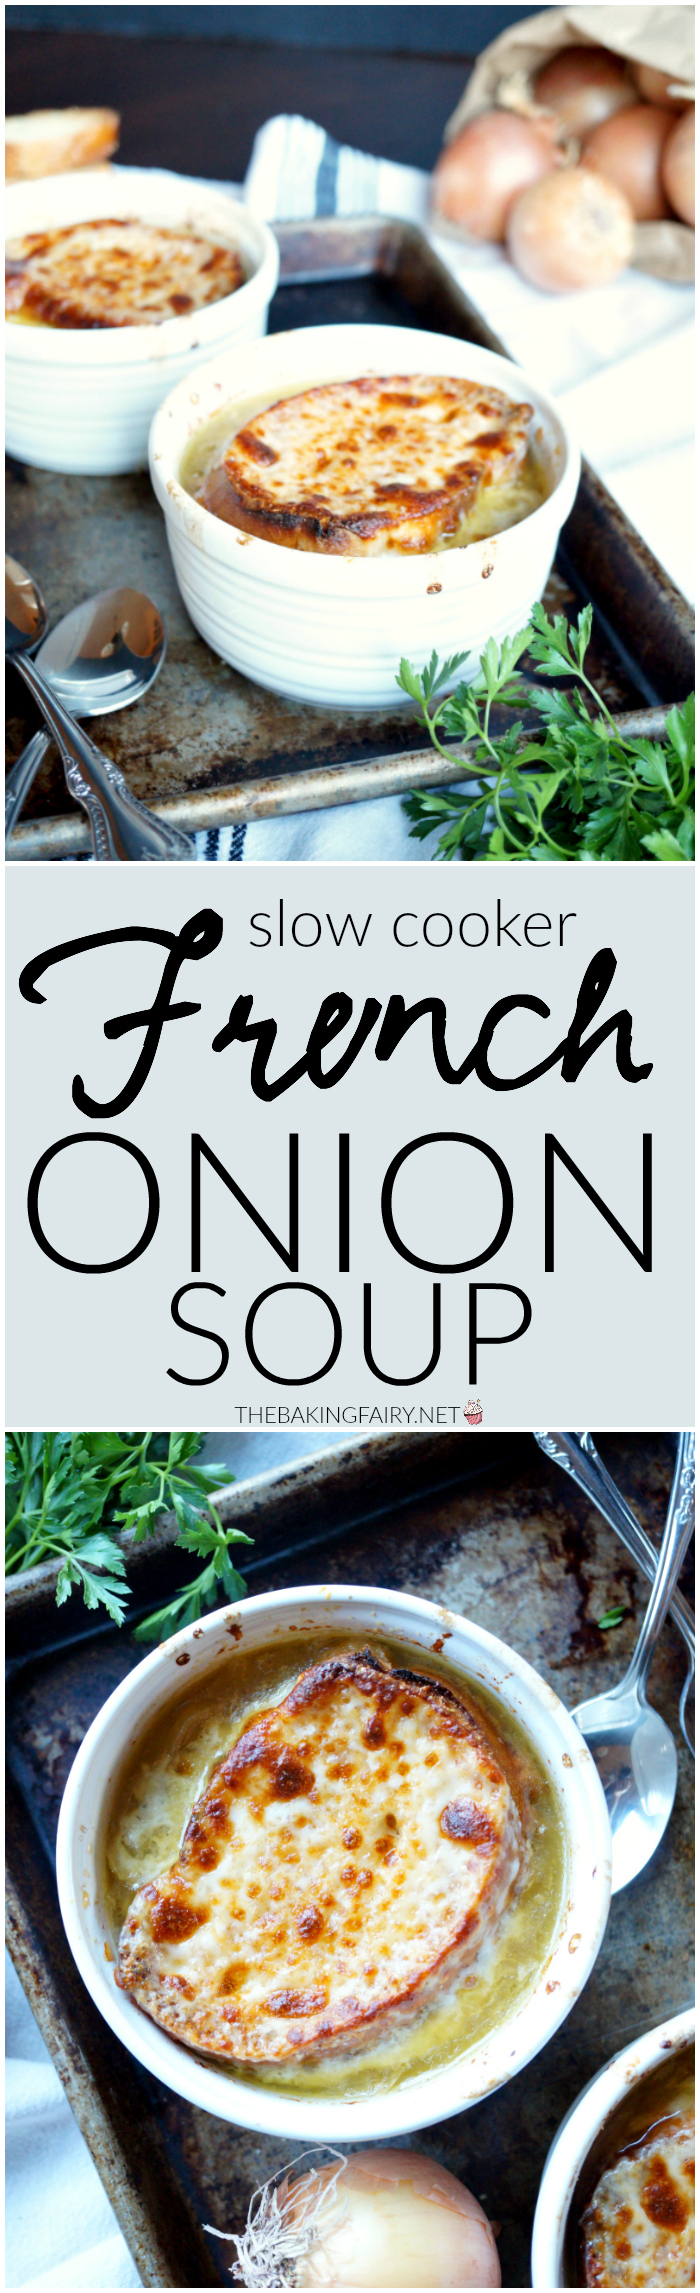 slow cooker french onion soup | The Baking Fairy